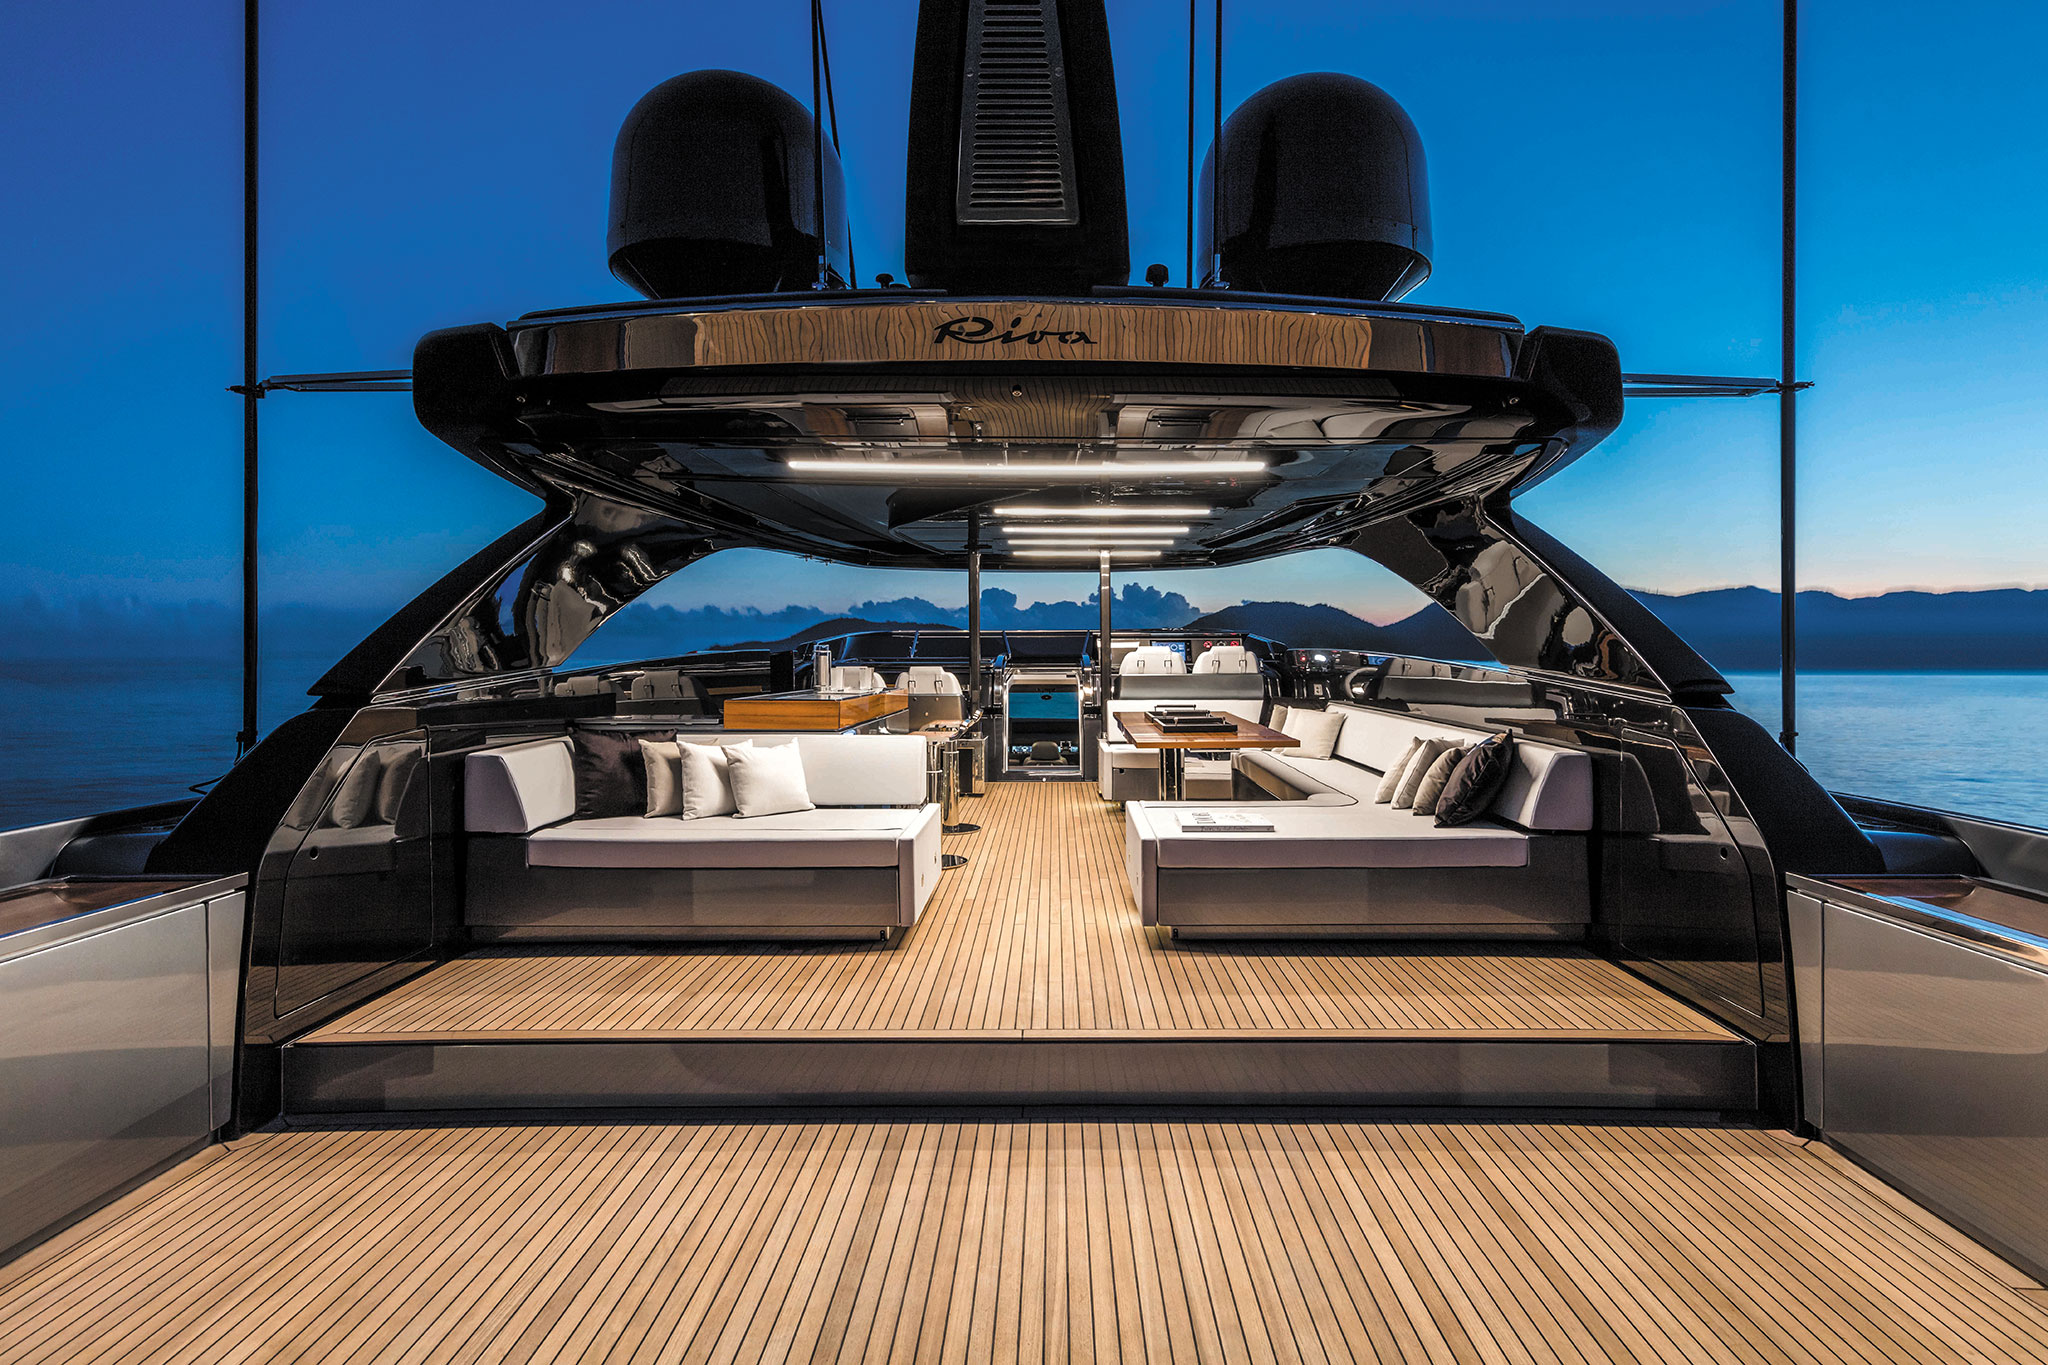 Riva-110-Dolcevita-Yachts-France-171-Interiors-1